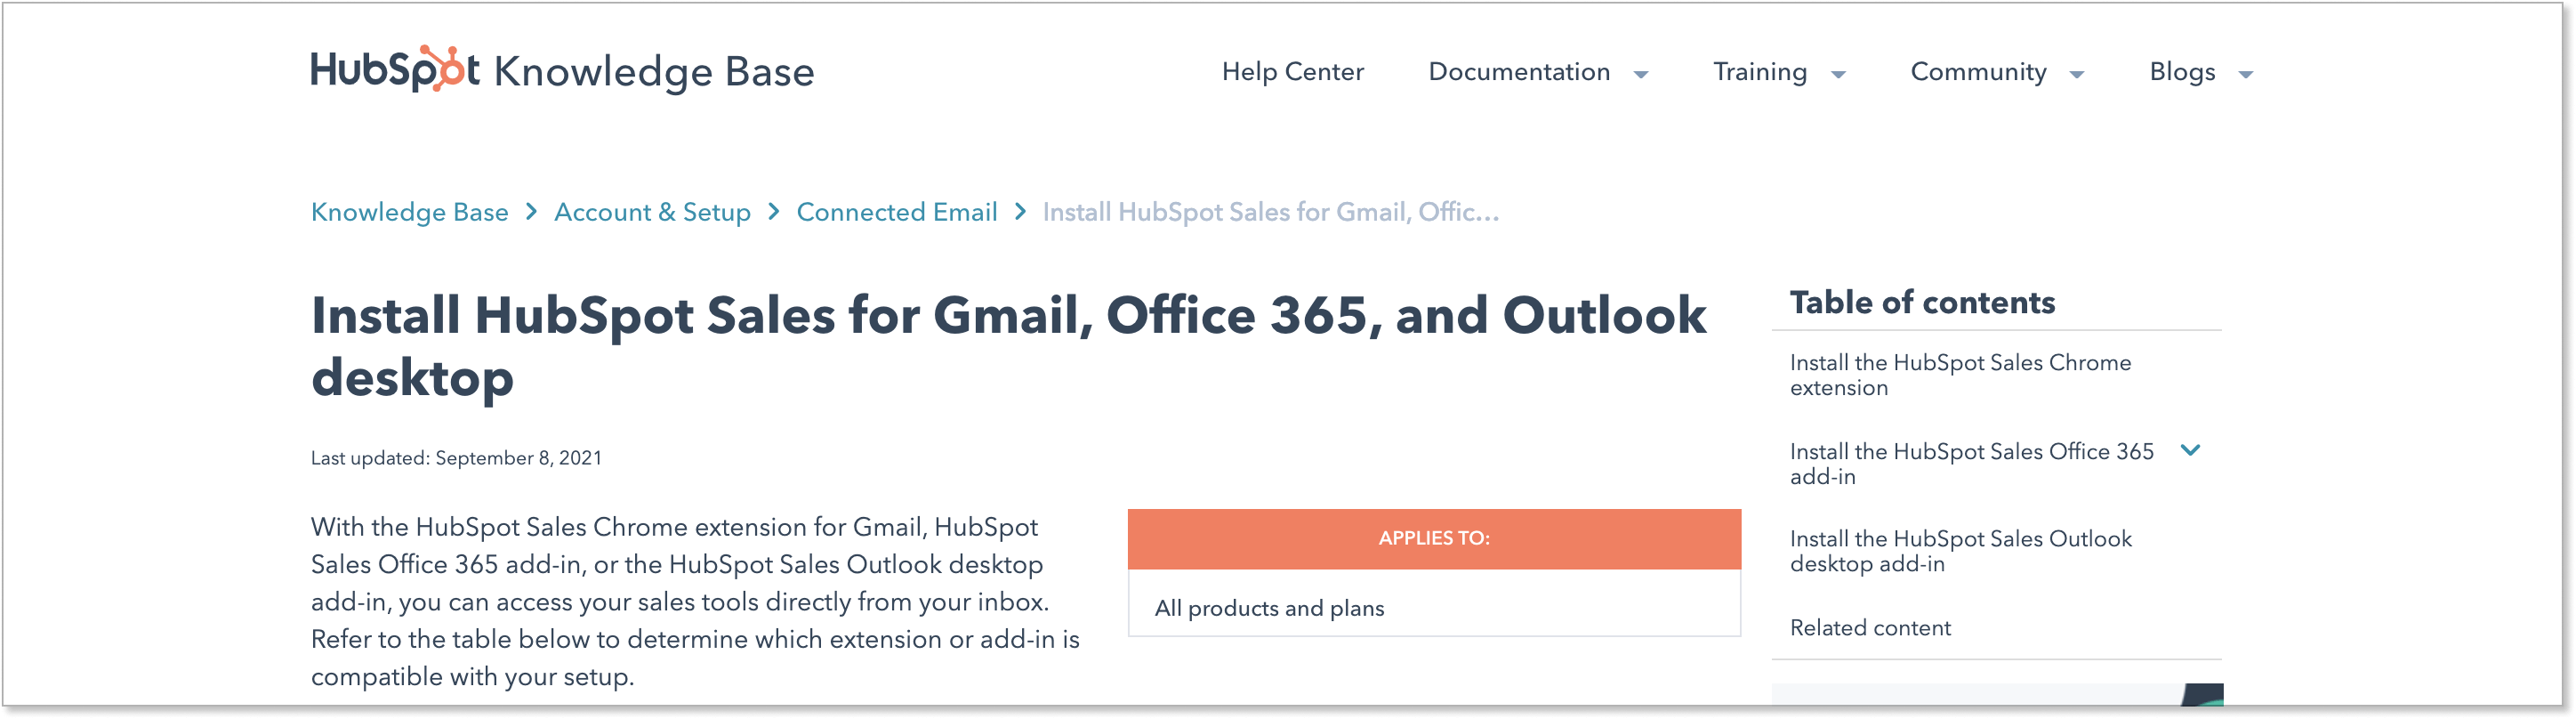 Hubspot's installation guide for mail agents